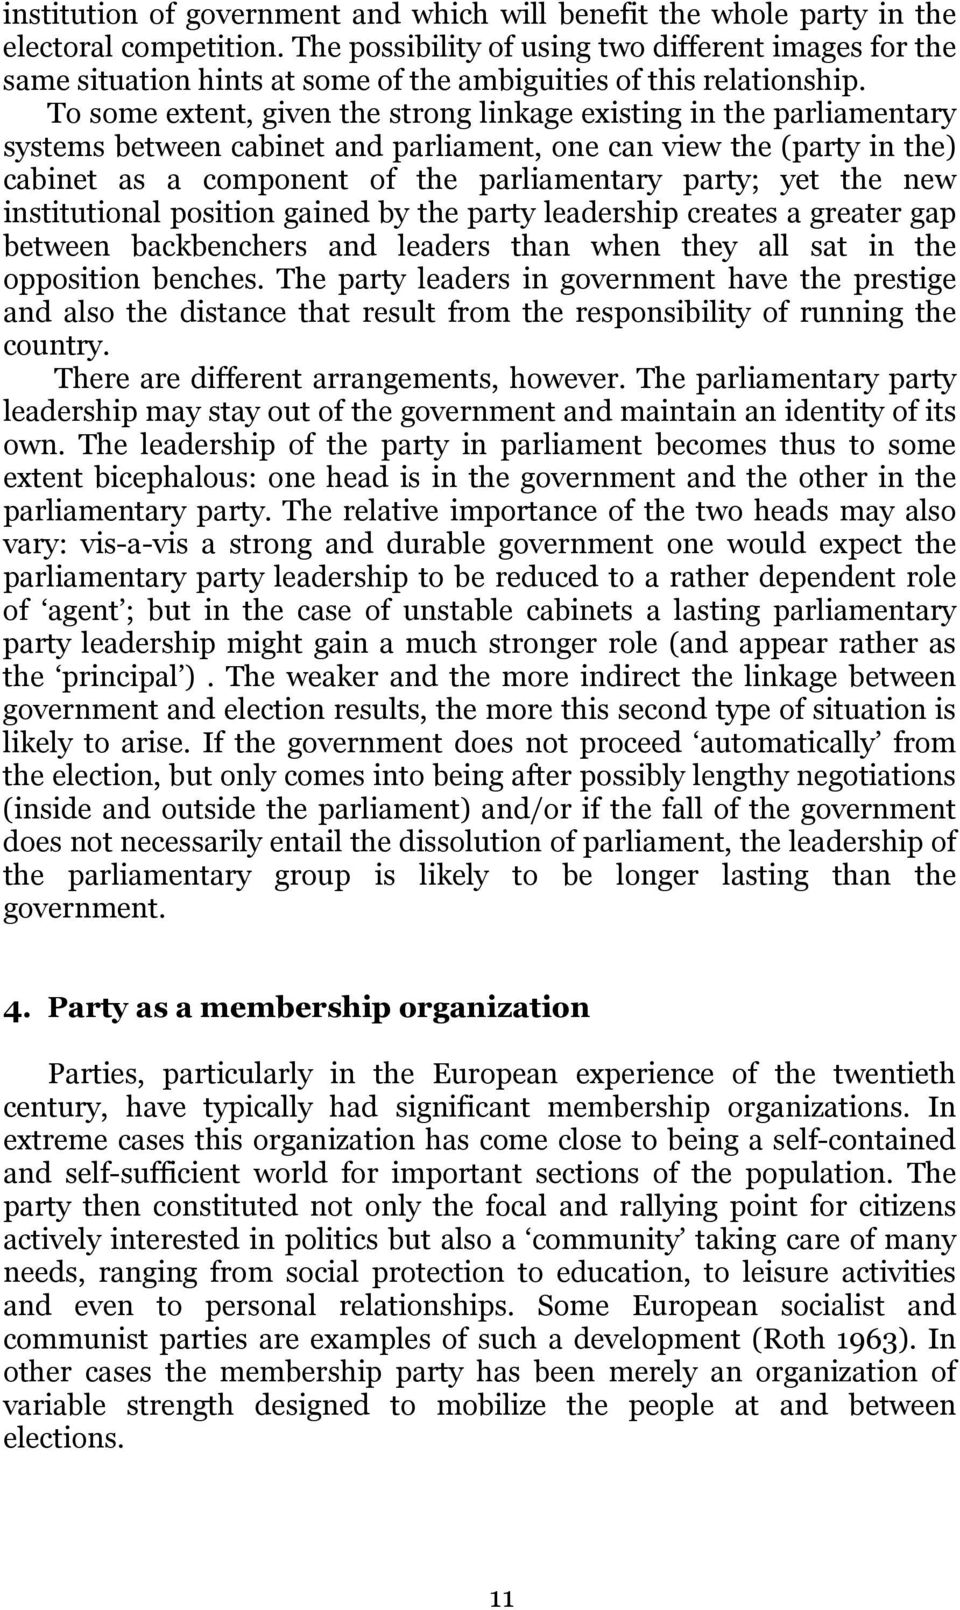 To some extent, given the strong linkage existing in the parliamentary systems between cabinet and parliament, one can view the (party in the) cabinet as a component of the parliamentary party; yet